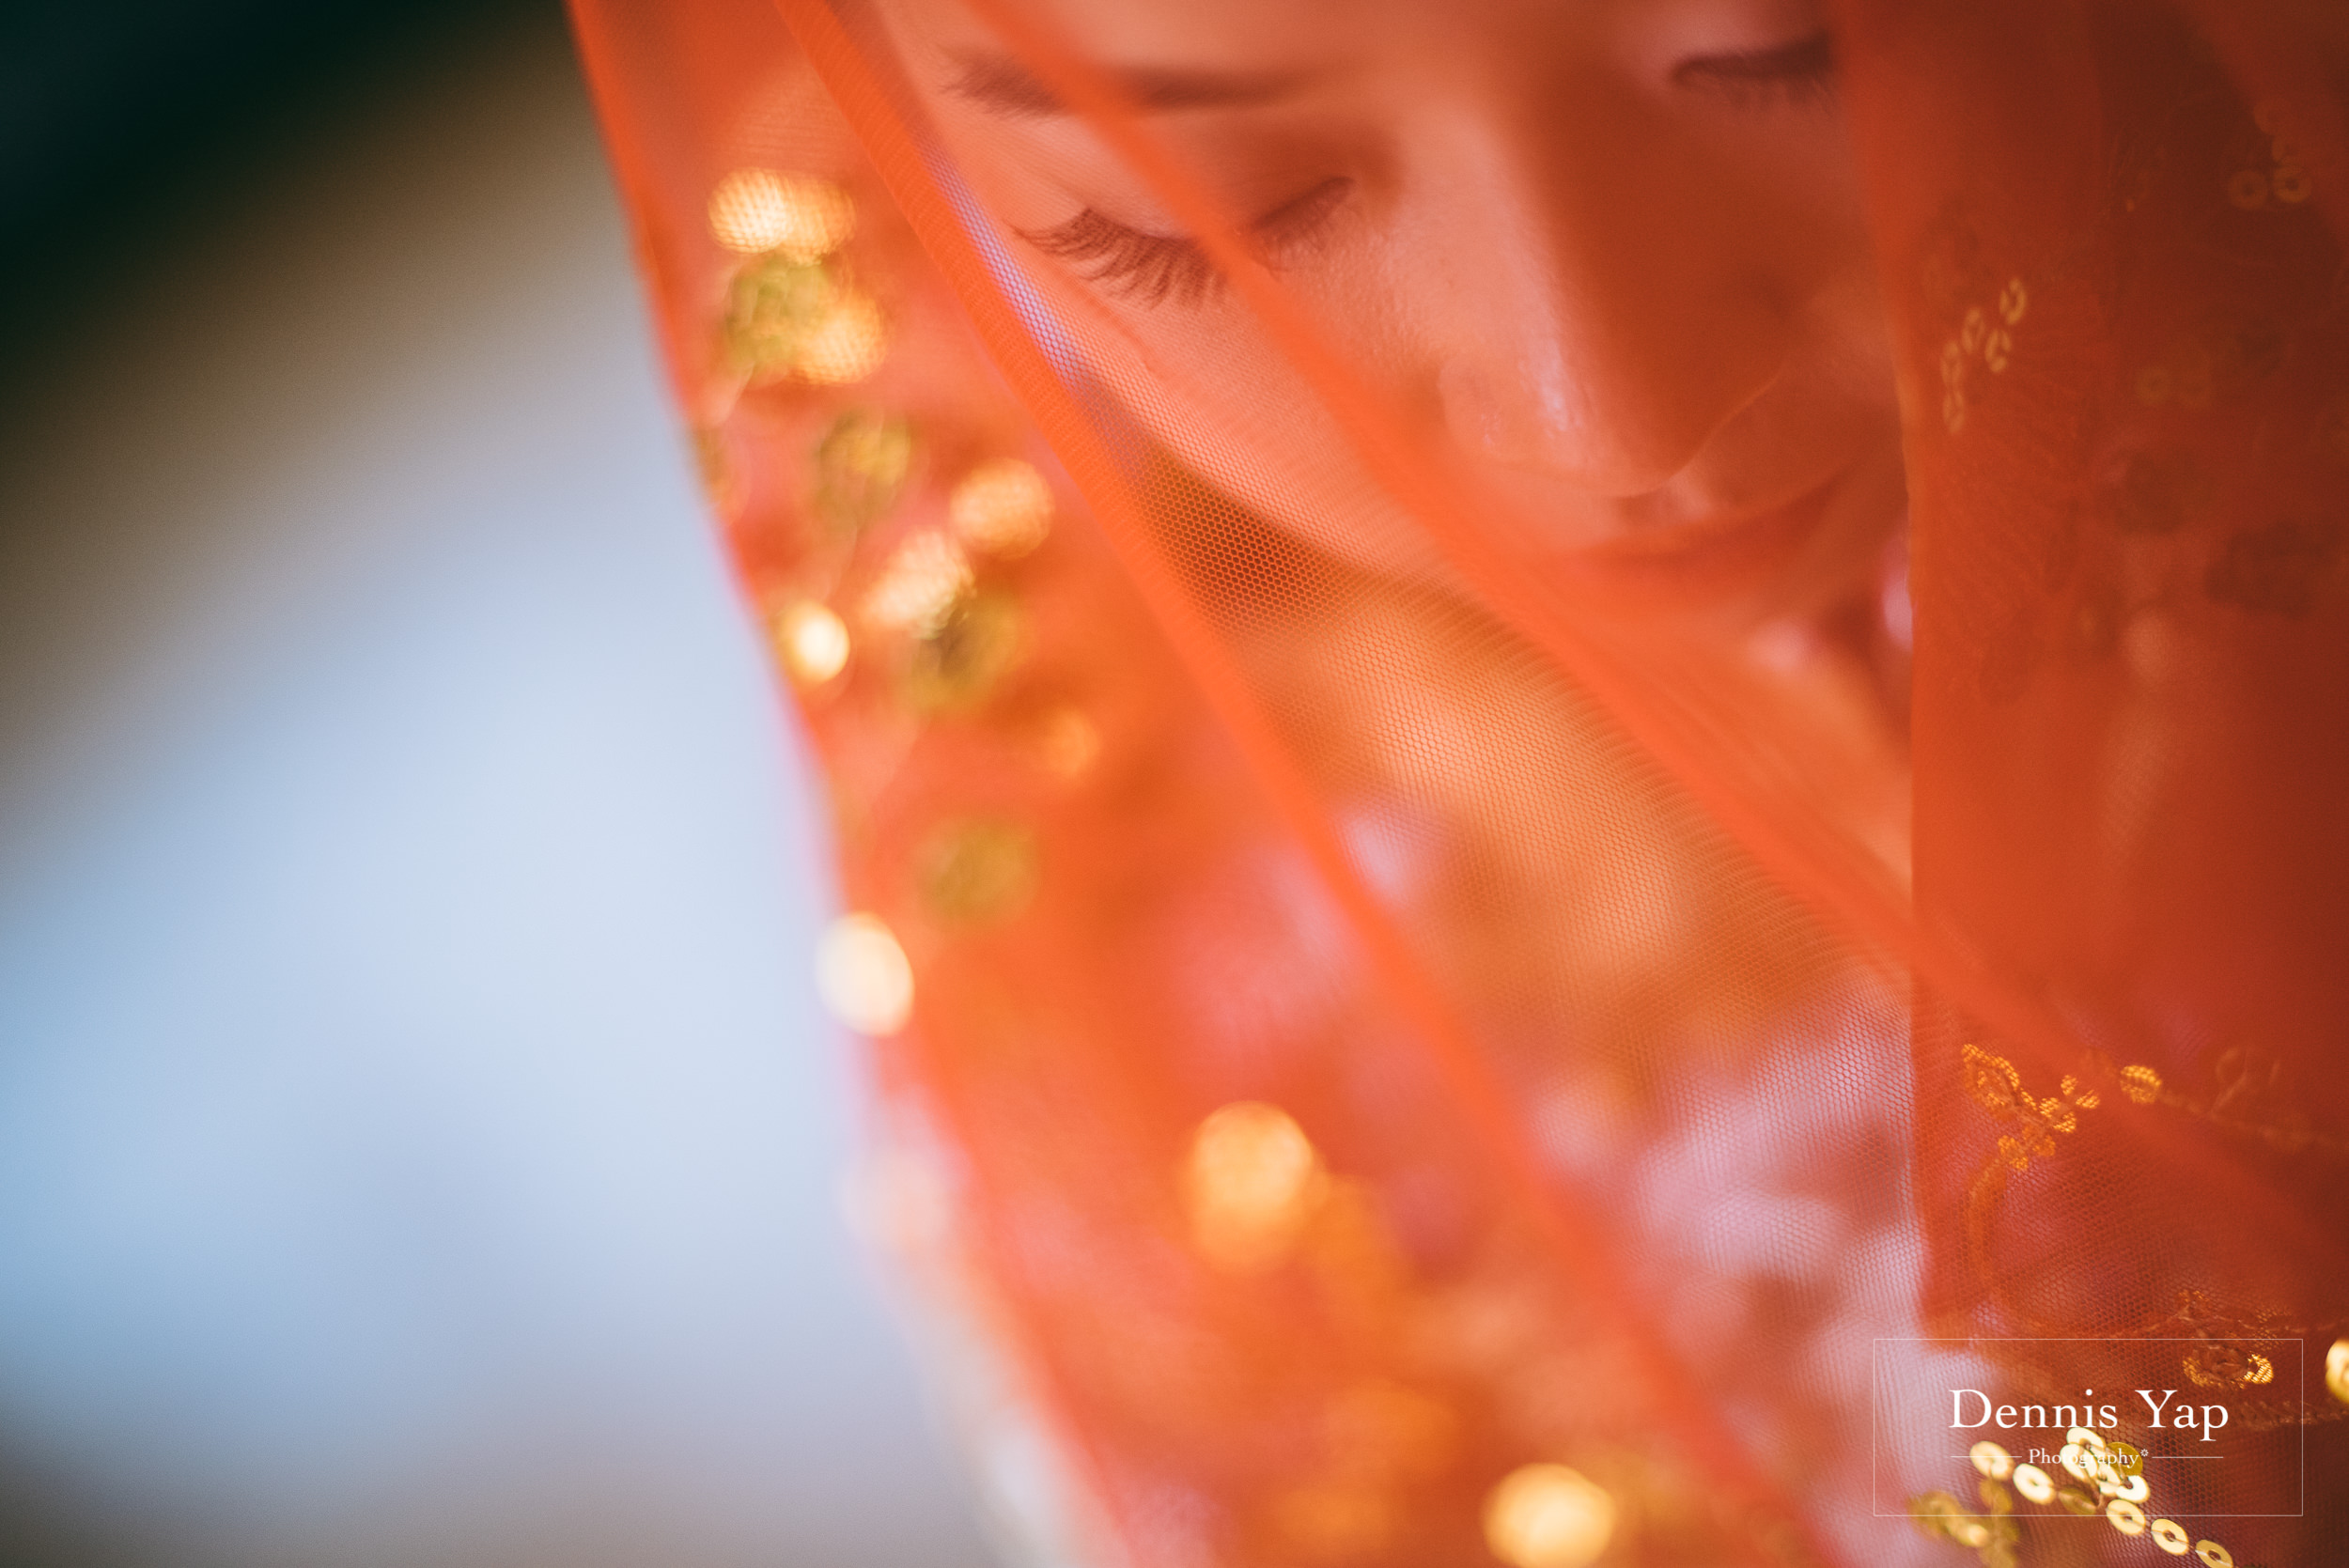 bobby fiona dennis yap photography malaysia wedding photographer chinese traditional-73.jpg